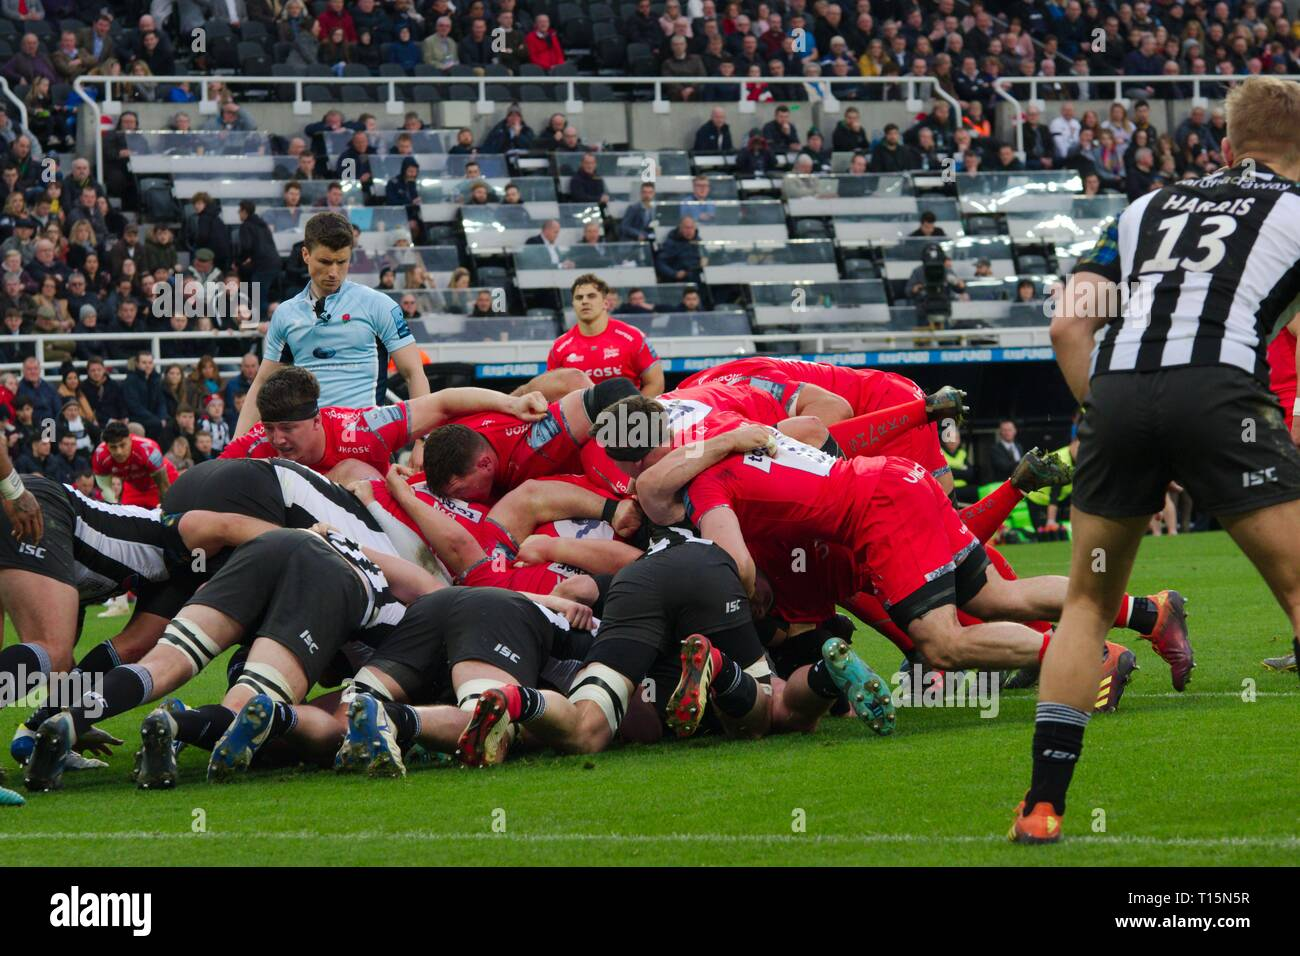 Newcastle upon Tyne, England, 23 March 2019. A scrum collapsing during the Gallagher Premiership match between Newcastle Falcons and Sale Sharks at St James Park, Newcastle. Credit: Colin Edwards/Alamy Live News. - Stock Image